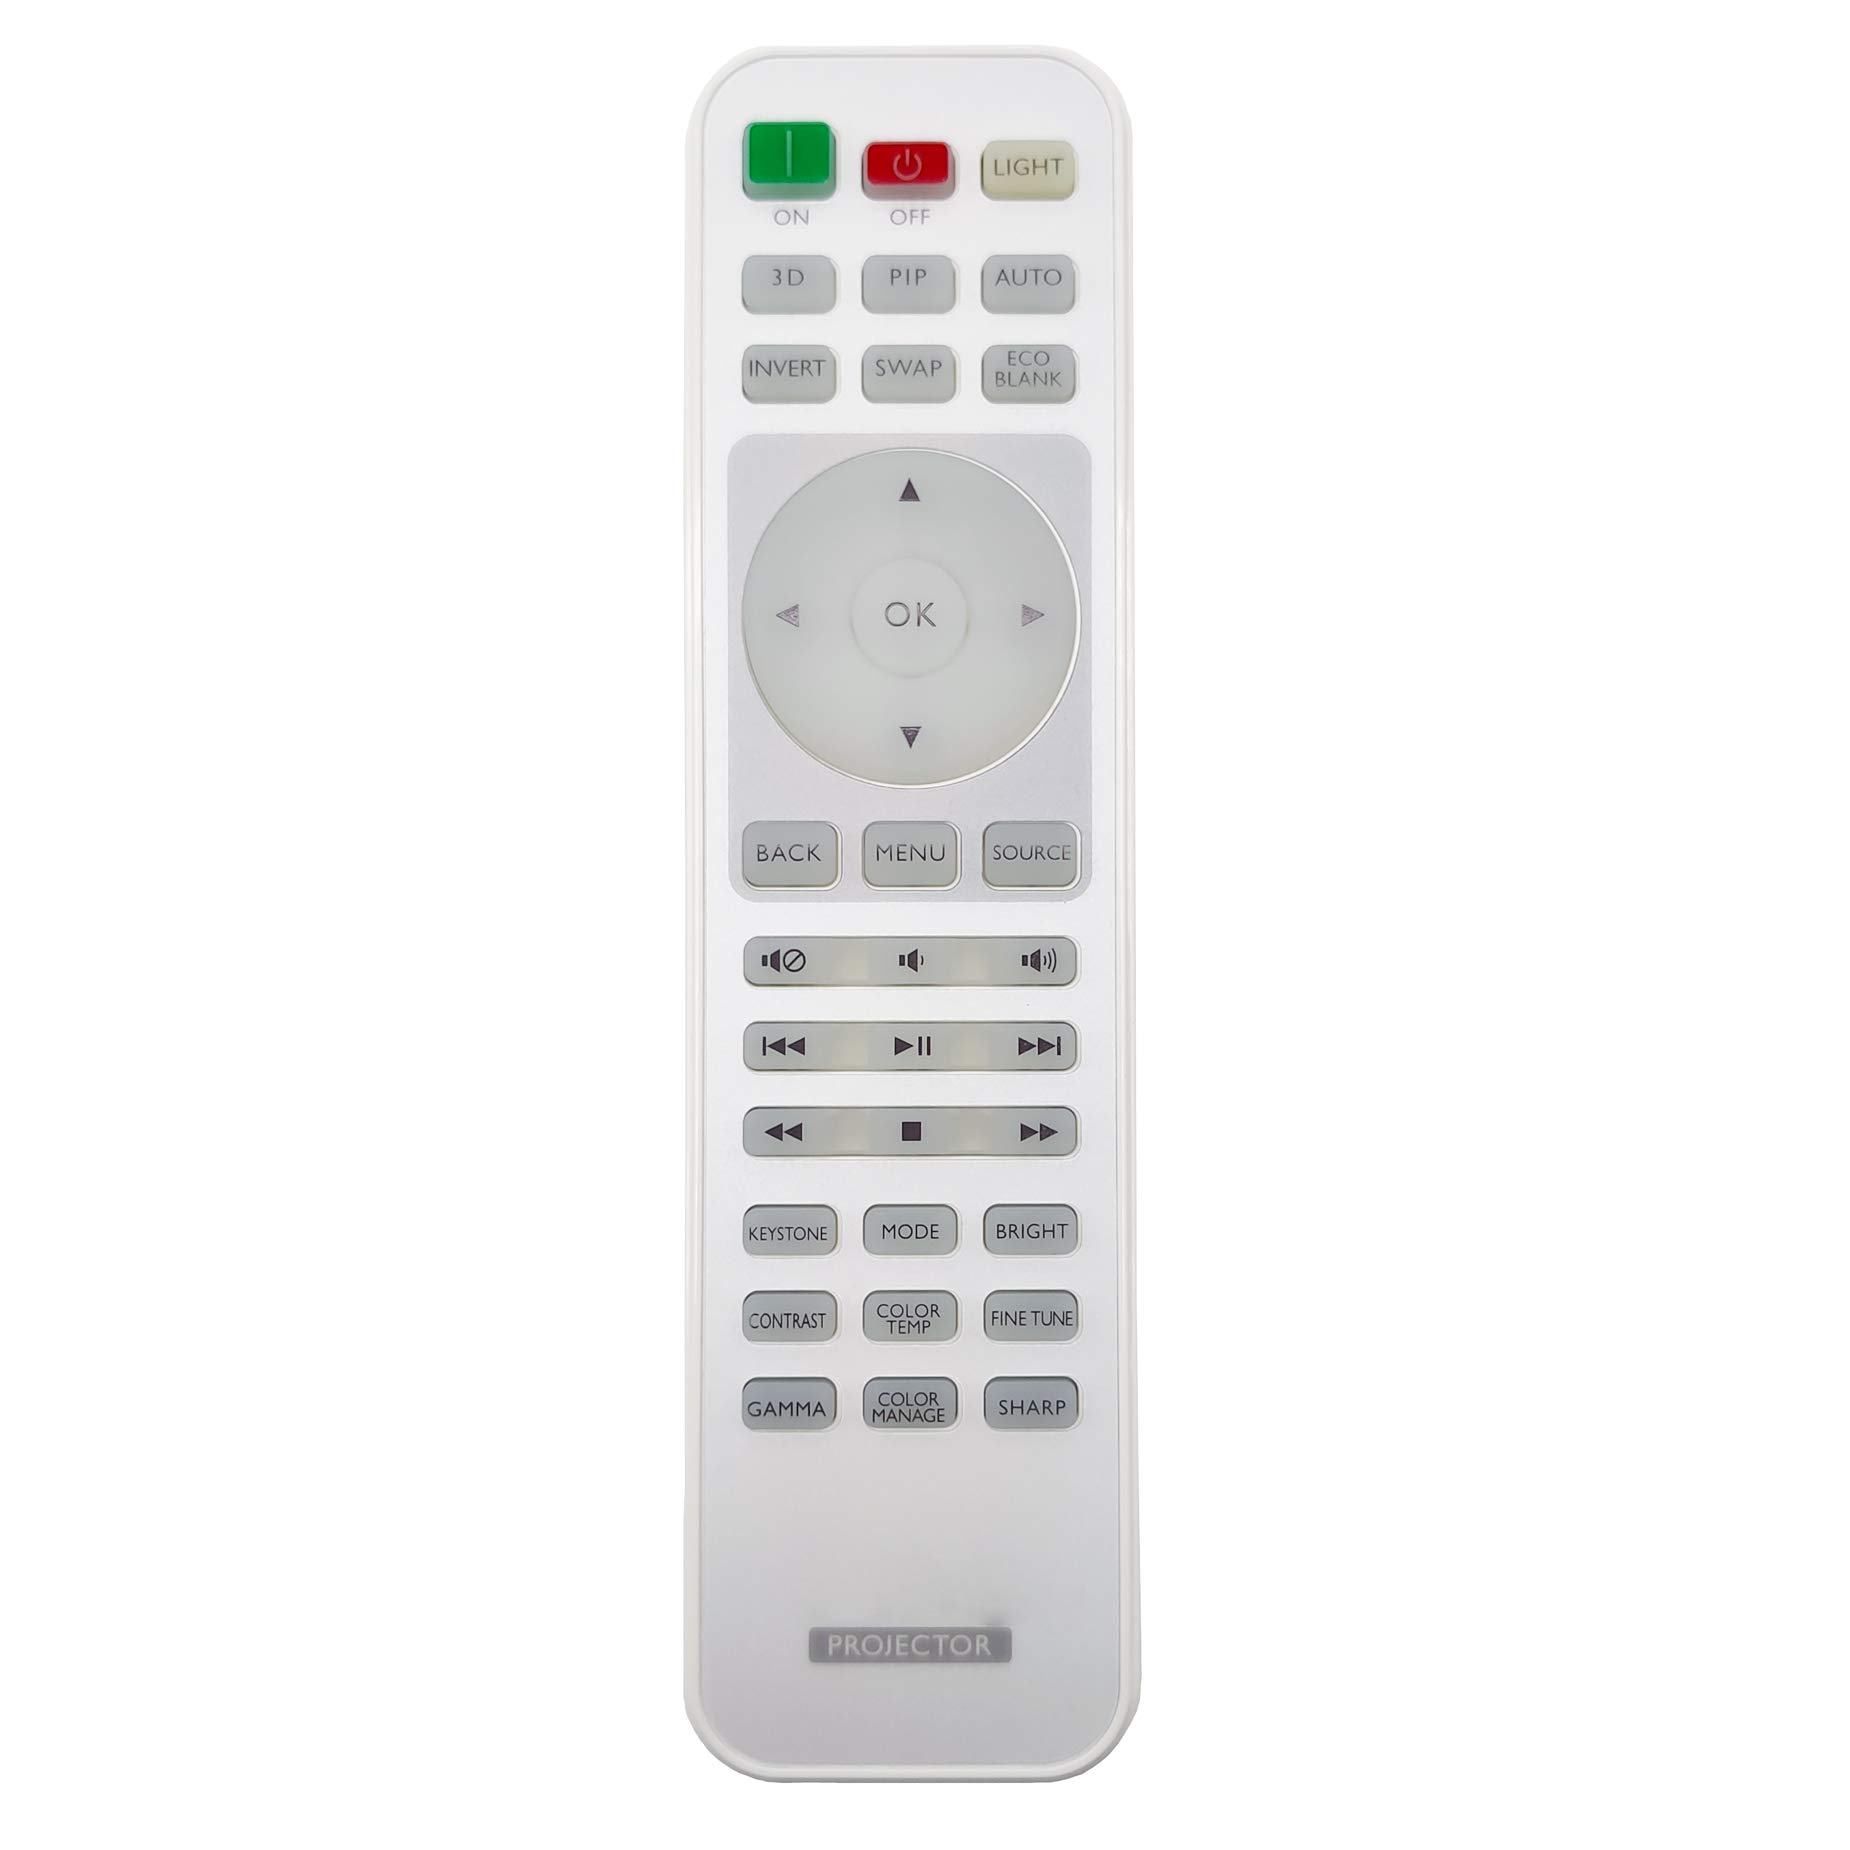 InTeching Projector Remote Control for BenQ HT1075, HT1085ST, HT2050A, HT2150ST, HT3050, HT4050, MH684, TH670s, TH683, W1070+W, W1075, W1080ST+, W1090, W1110s, W1120, W1210ST, W1350, W2000+, W3000 by INTECHING